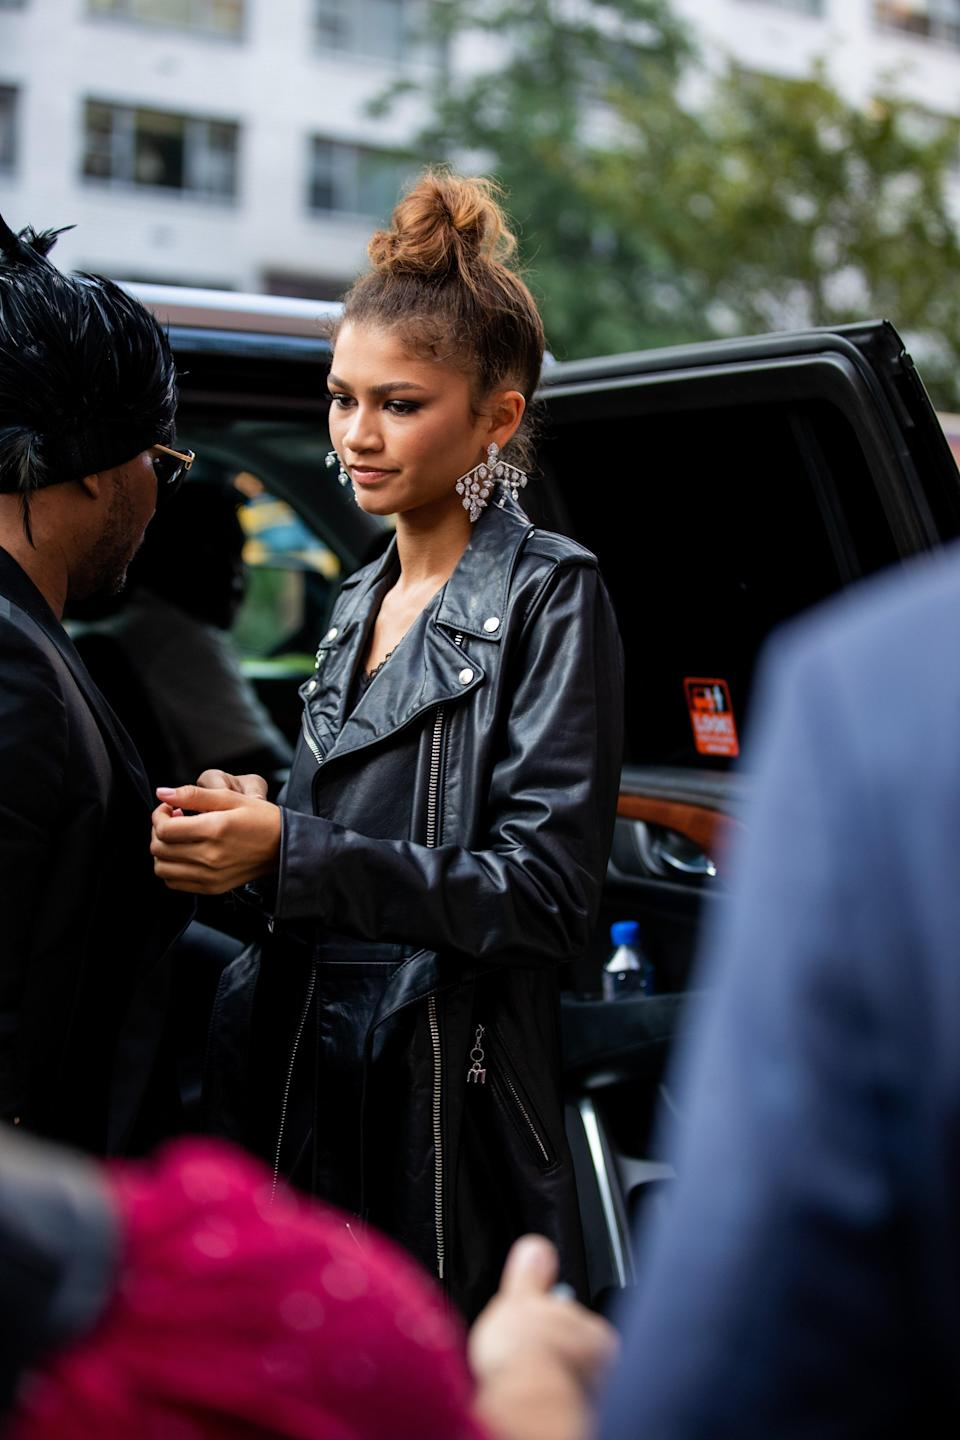 Spotted: Zendaya wearing the wispiest topknot we've ever seen.